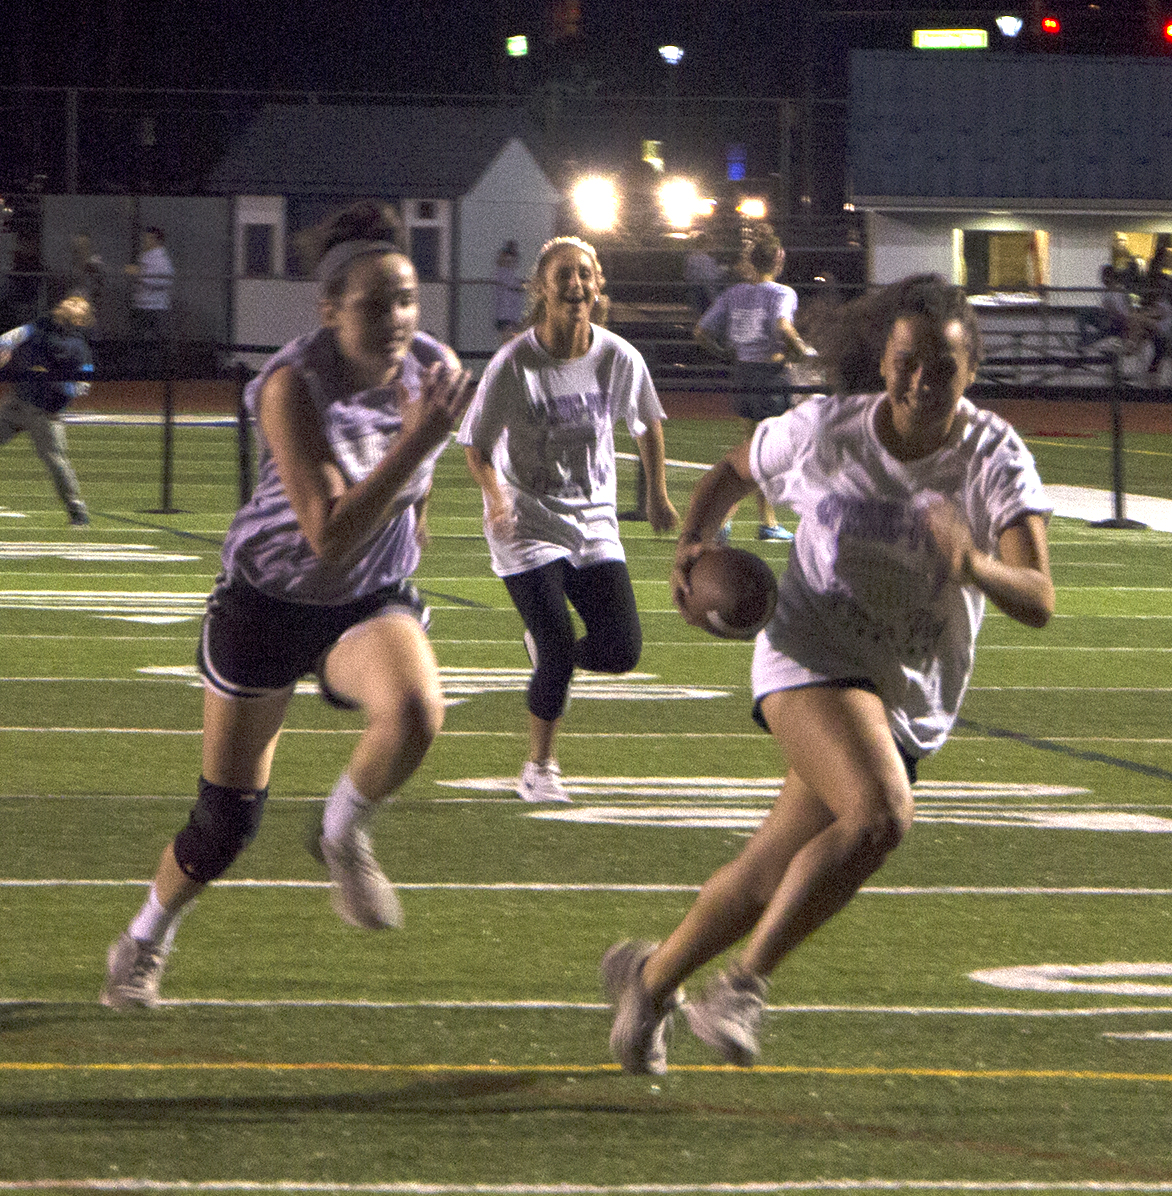 Sarah Derosa carries the football during the Powderpuff game.